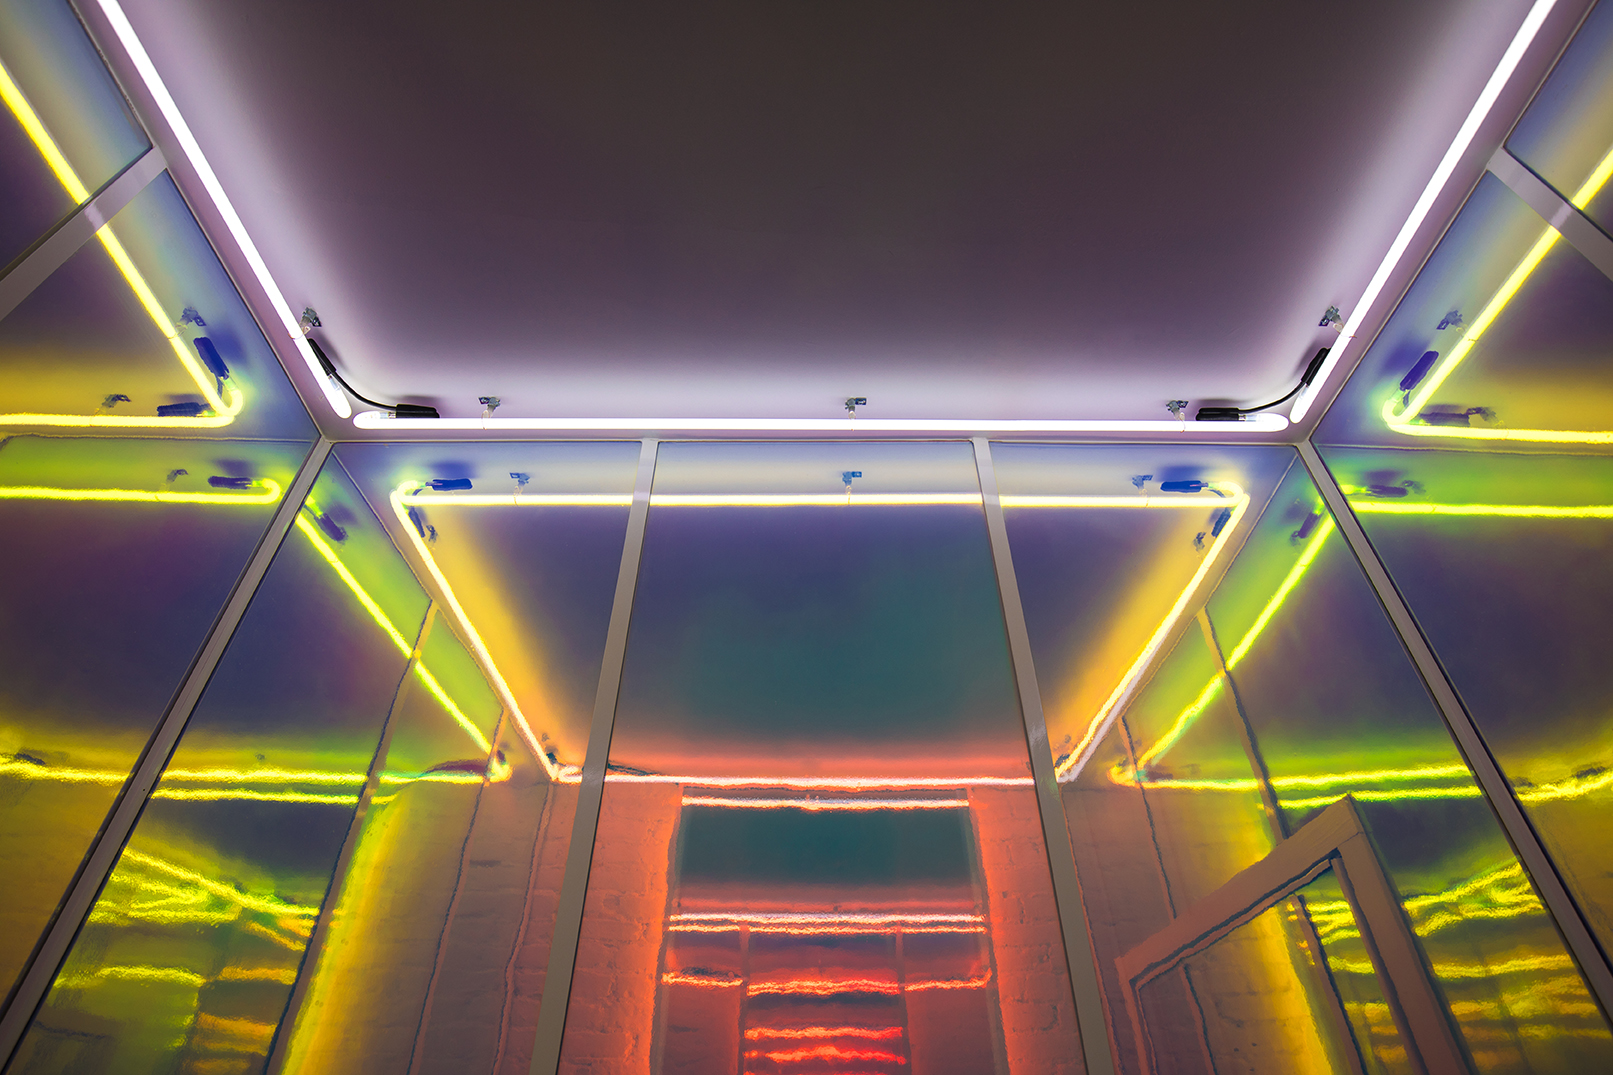 The neon lit ceiling of the fitting room.